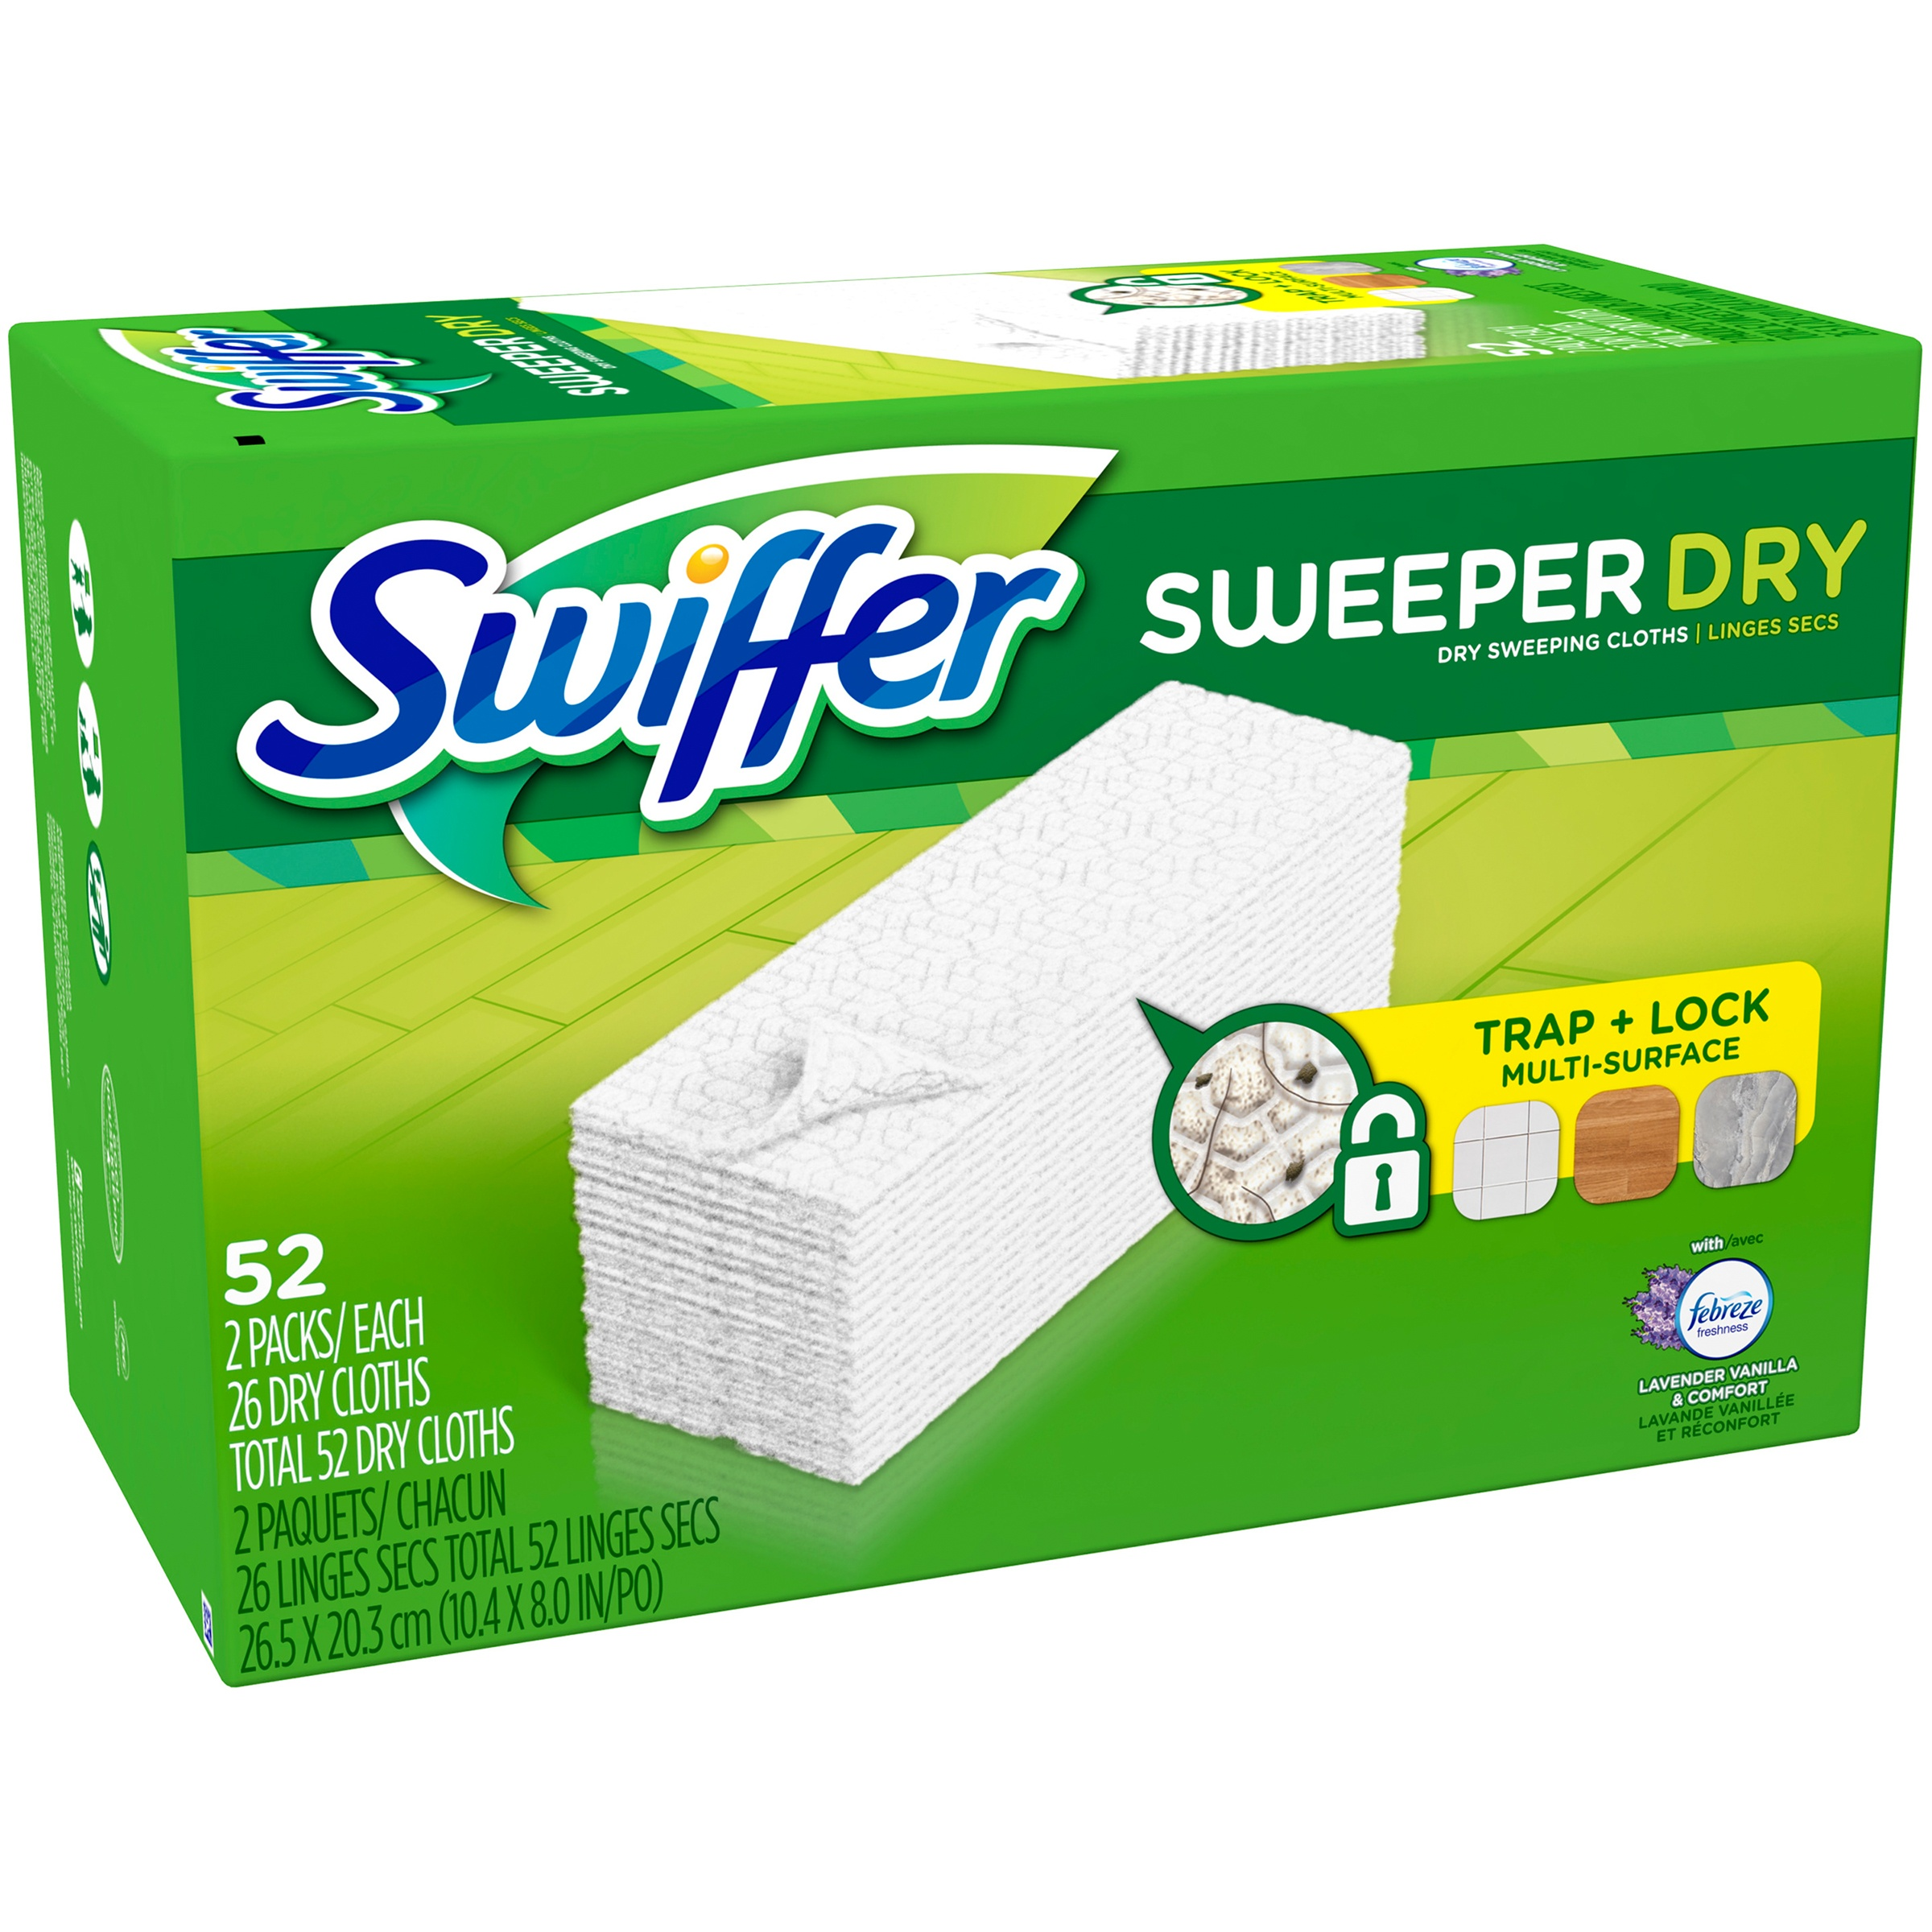 Swiffer Sweeper Dry Sweeping Pad, Multi Surface Refills for Dusters Floor Mop, Lavender & Vanilla Comfort, 52 Count